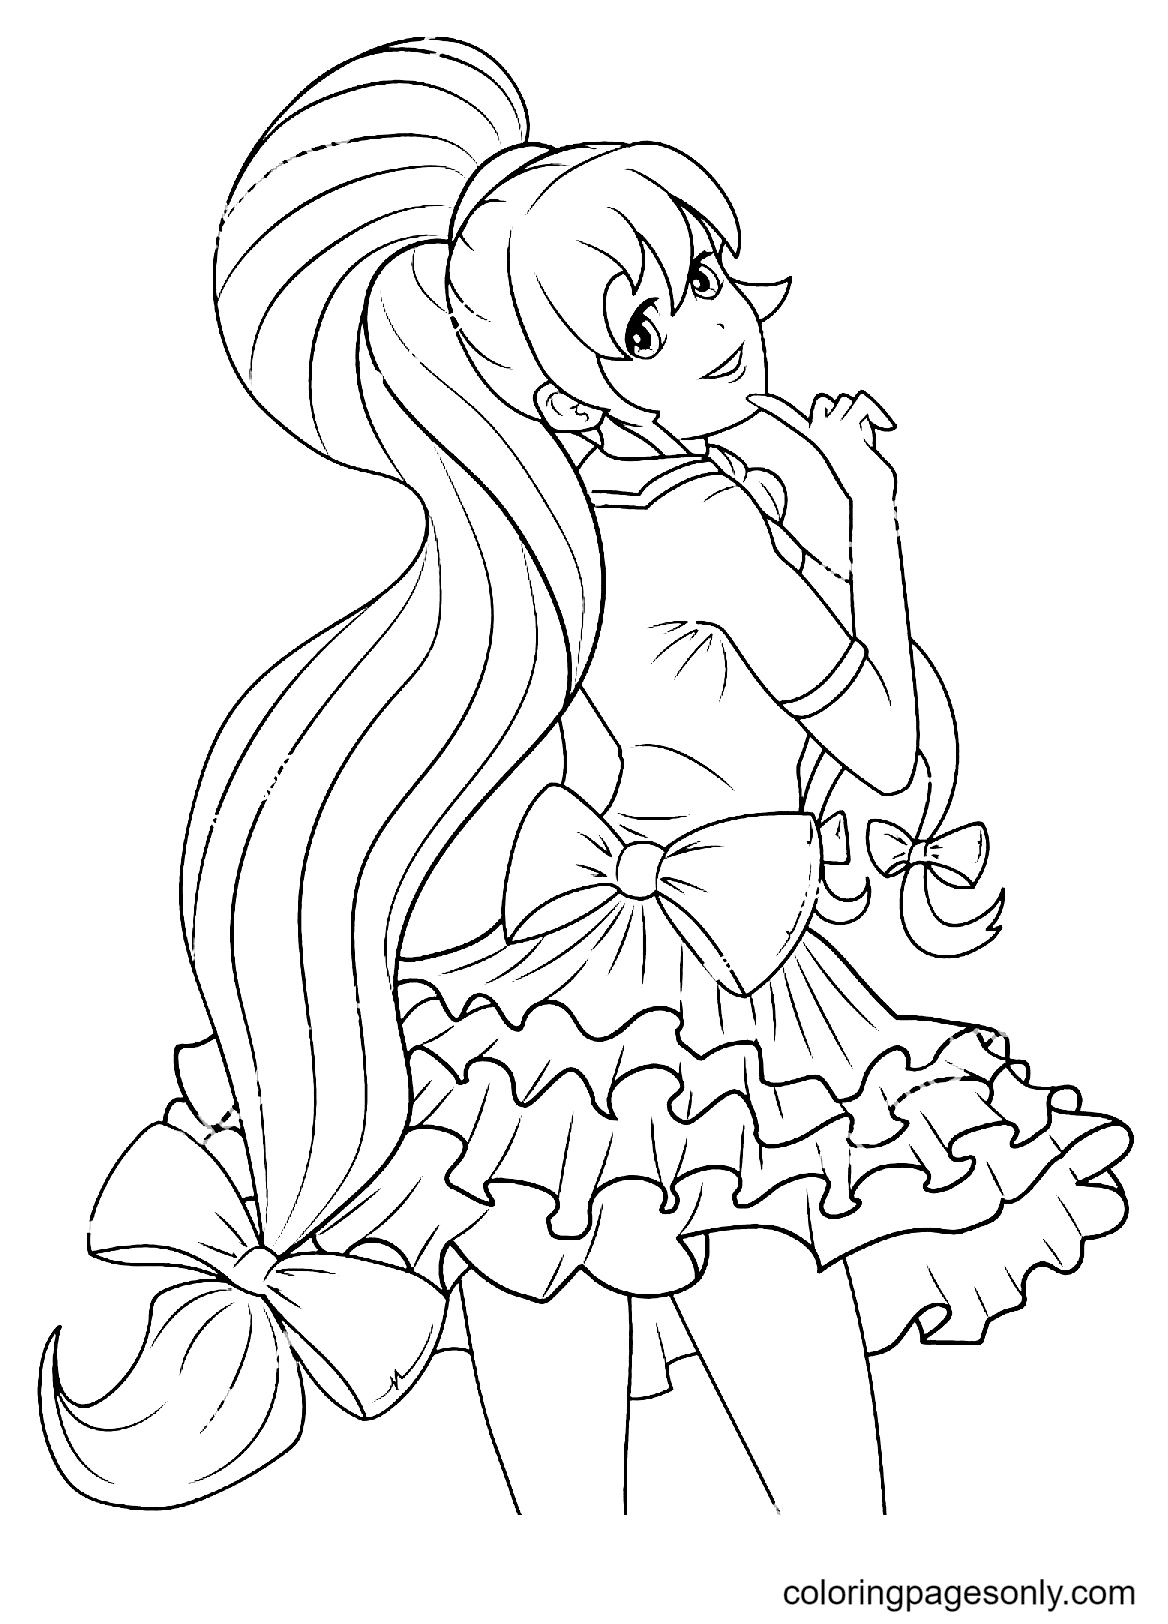 Beautiful Girl in a Lovely Dress Coloring Page